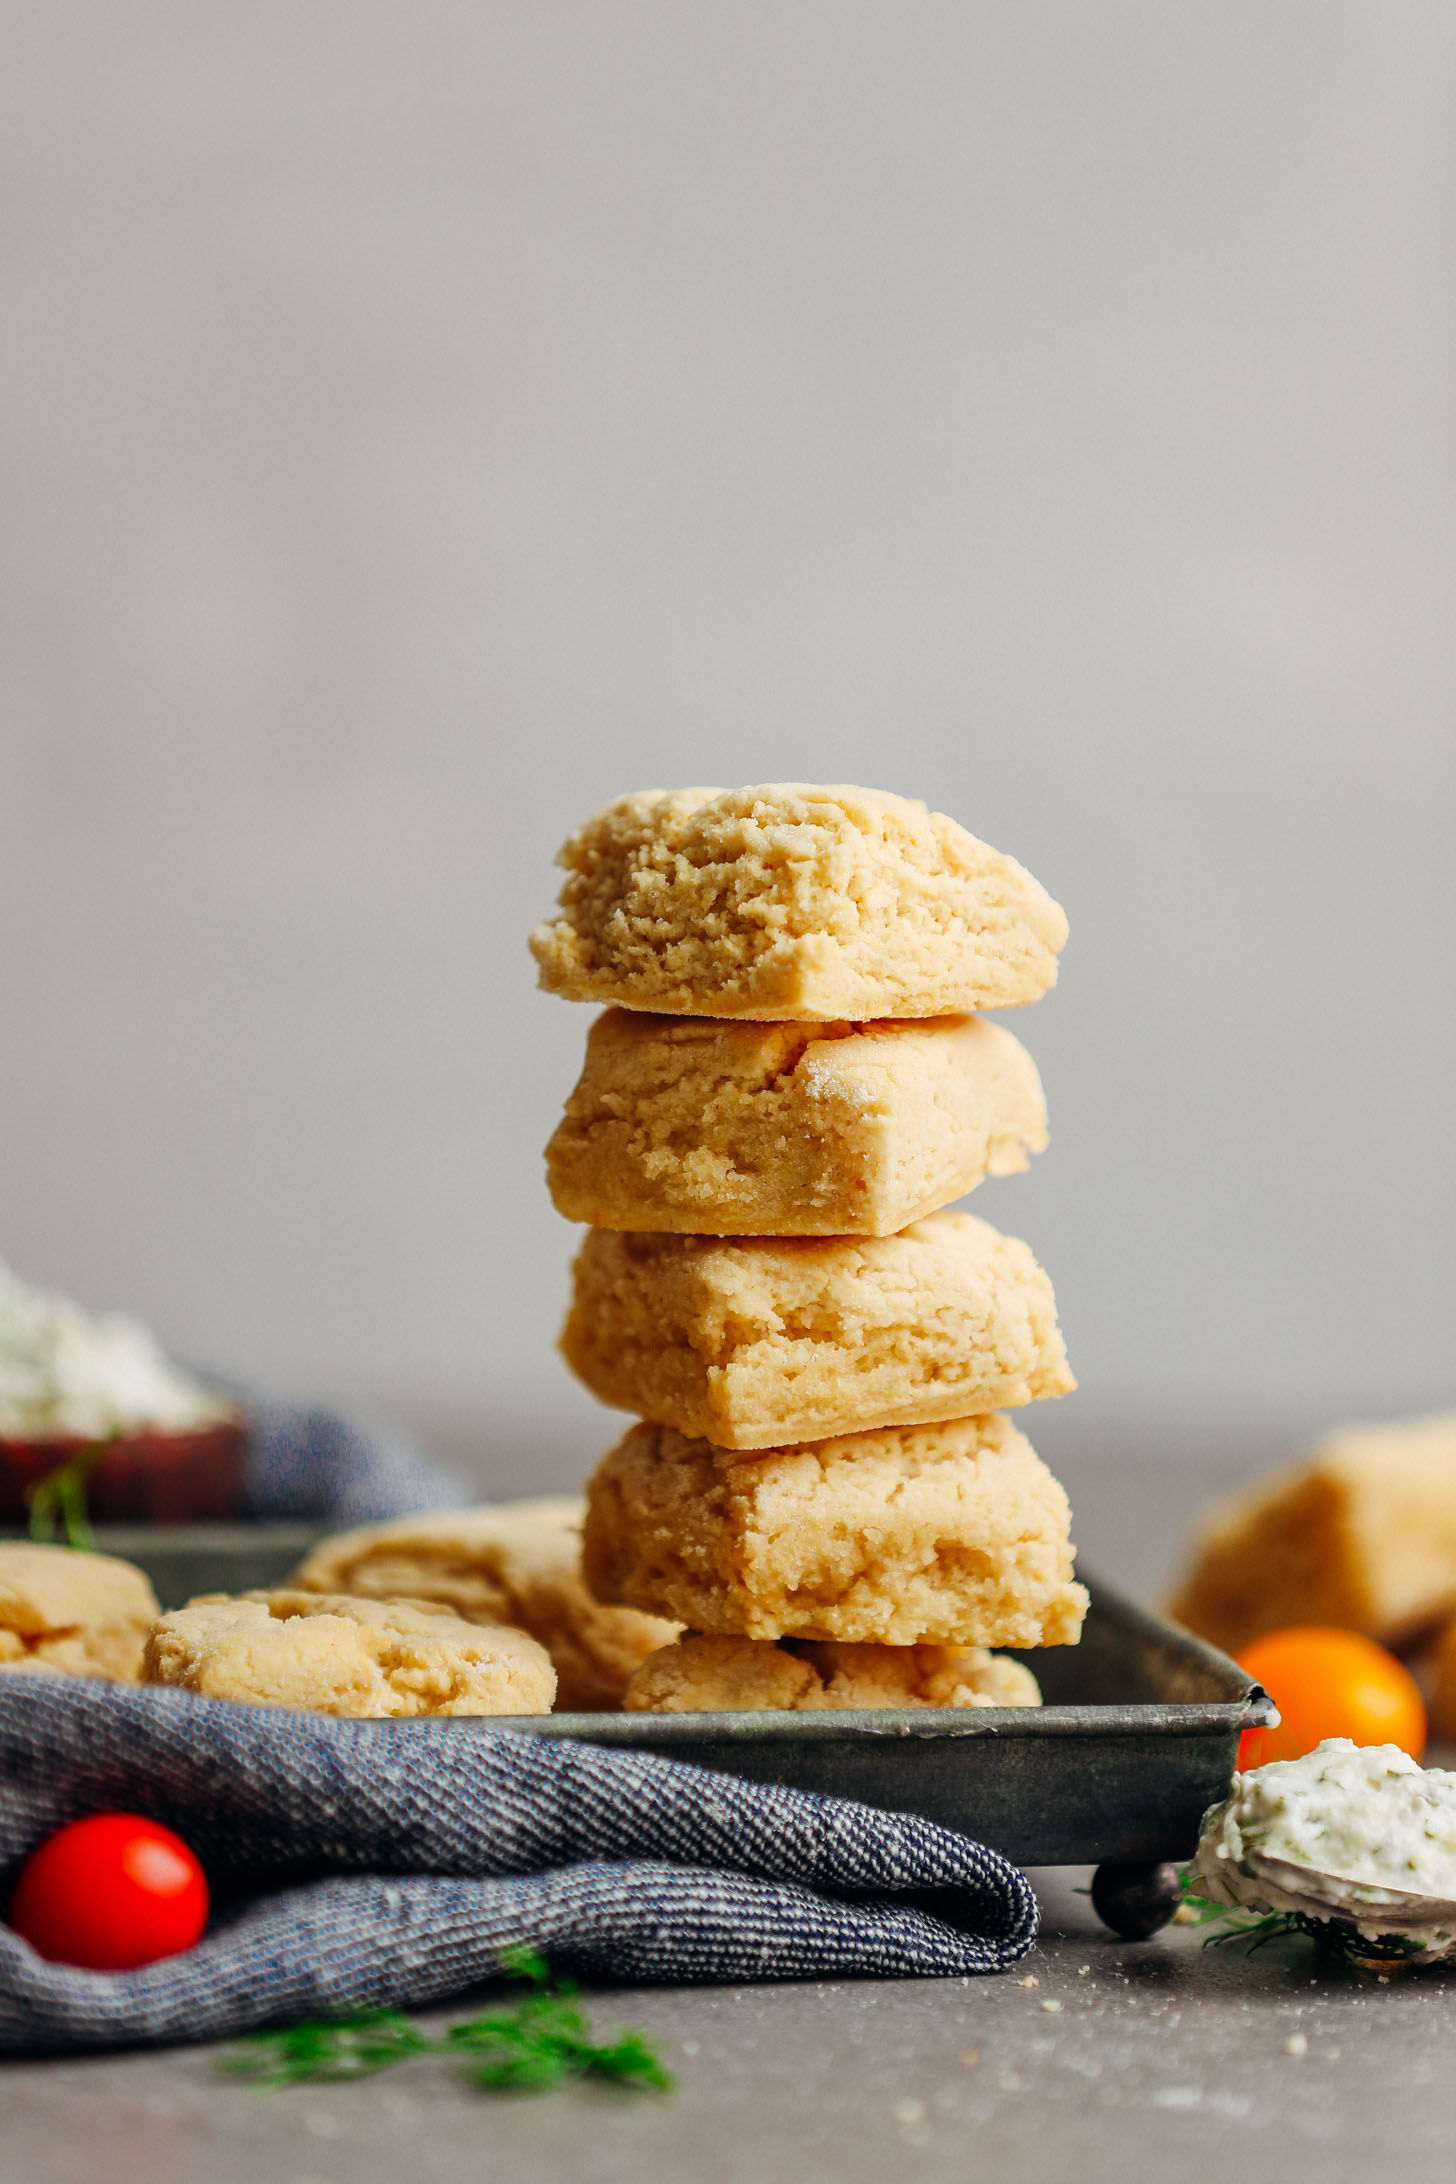 Stack of five delicious Vegan Gluten-Free Biscuits